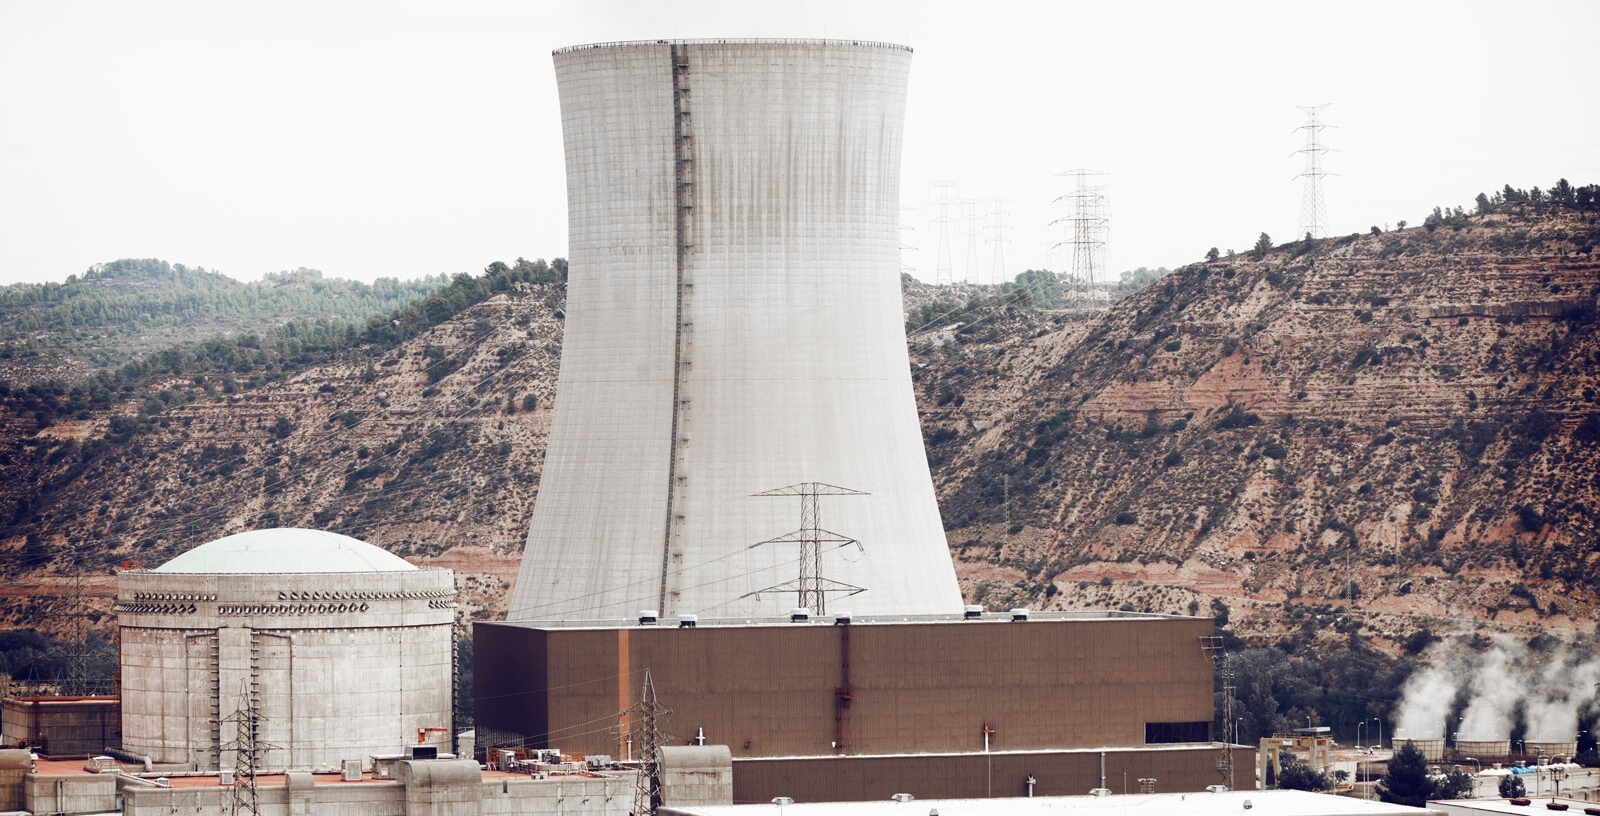 Idom_Nuclear_Services_Dismantling_Boilers_Asc__Nuclear_Power_Plant_ANAV_Alfonso_Calza